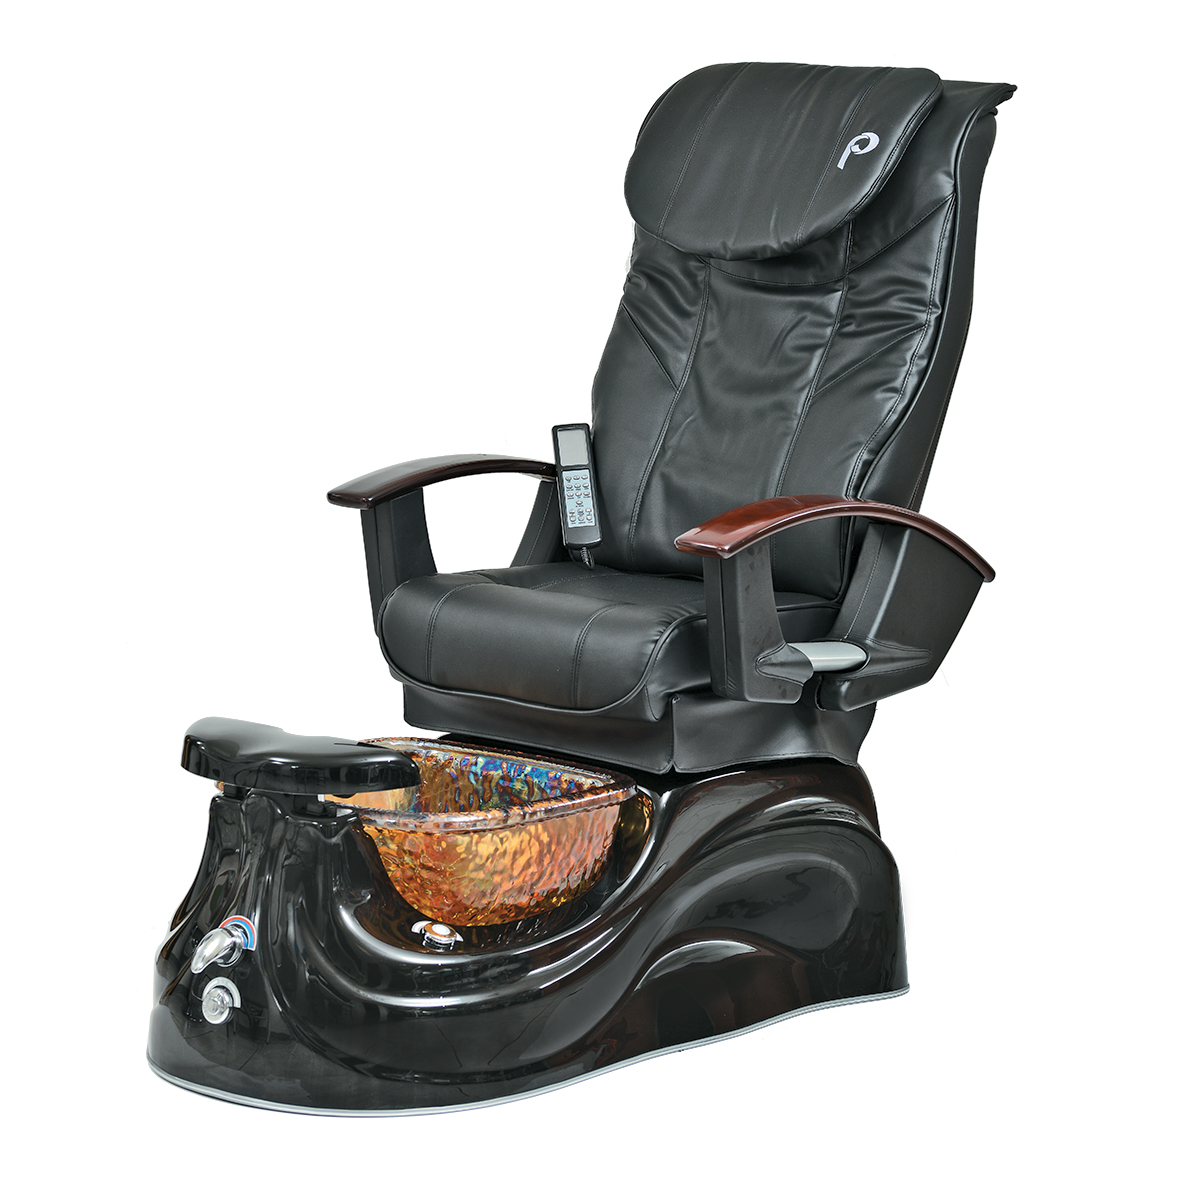 Game of Thrones: There are pedicure spas and then there's the San Marino Pedi Spa from Pibbs. Pipe-free with magnetic jets, it features motorized reclining and forward/backward chair controls and offers deep kneading, tapping or rolling Shiatsu massage. The sleek European-designed black base and elegant swirled glass bowl is just icing on the cake.